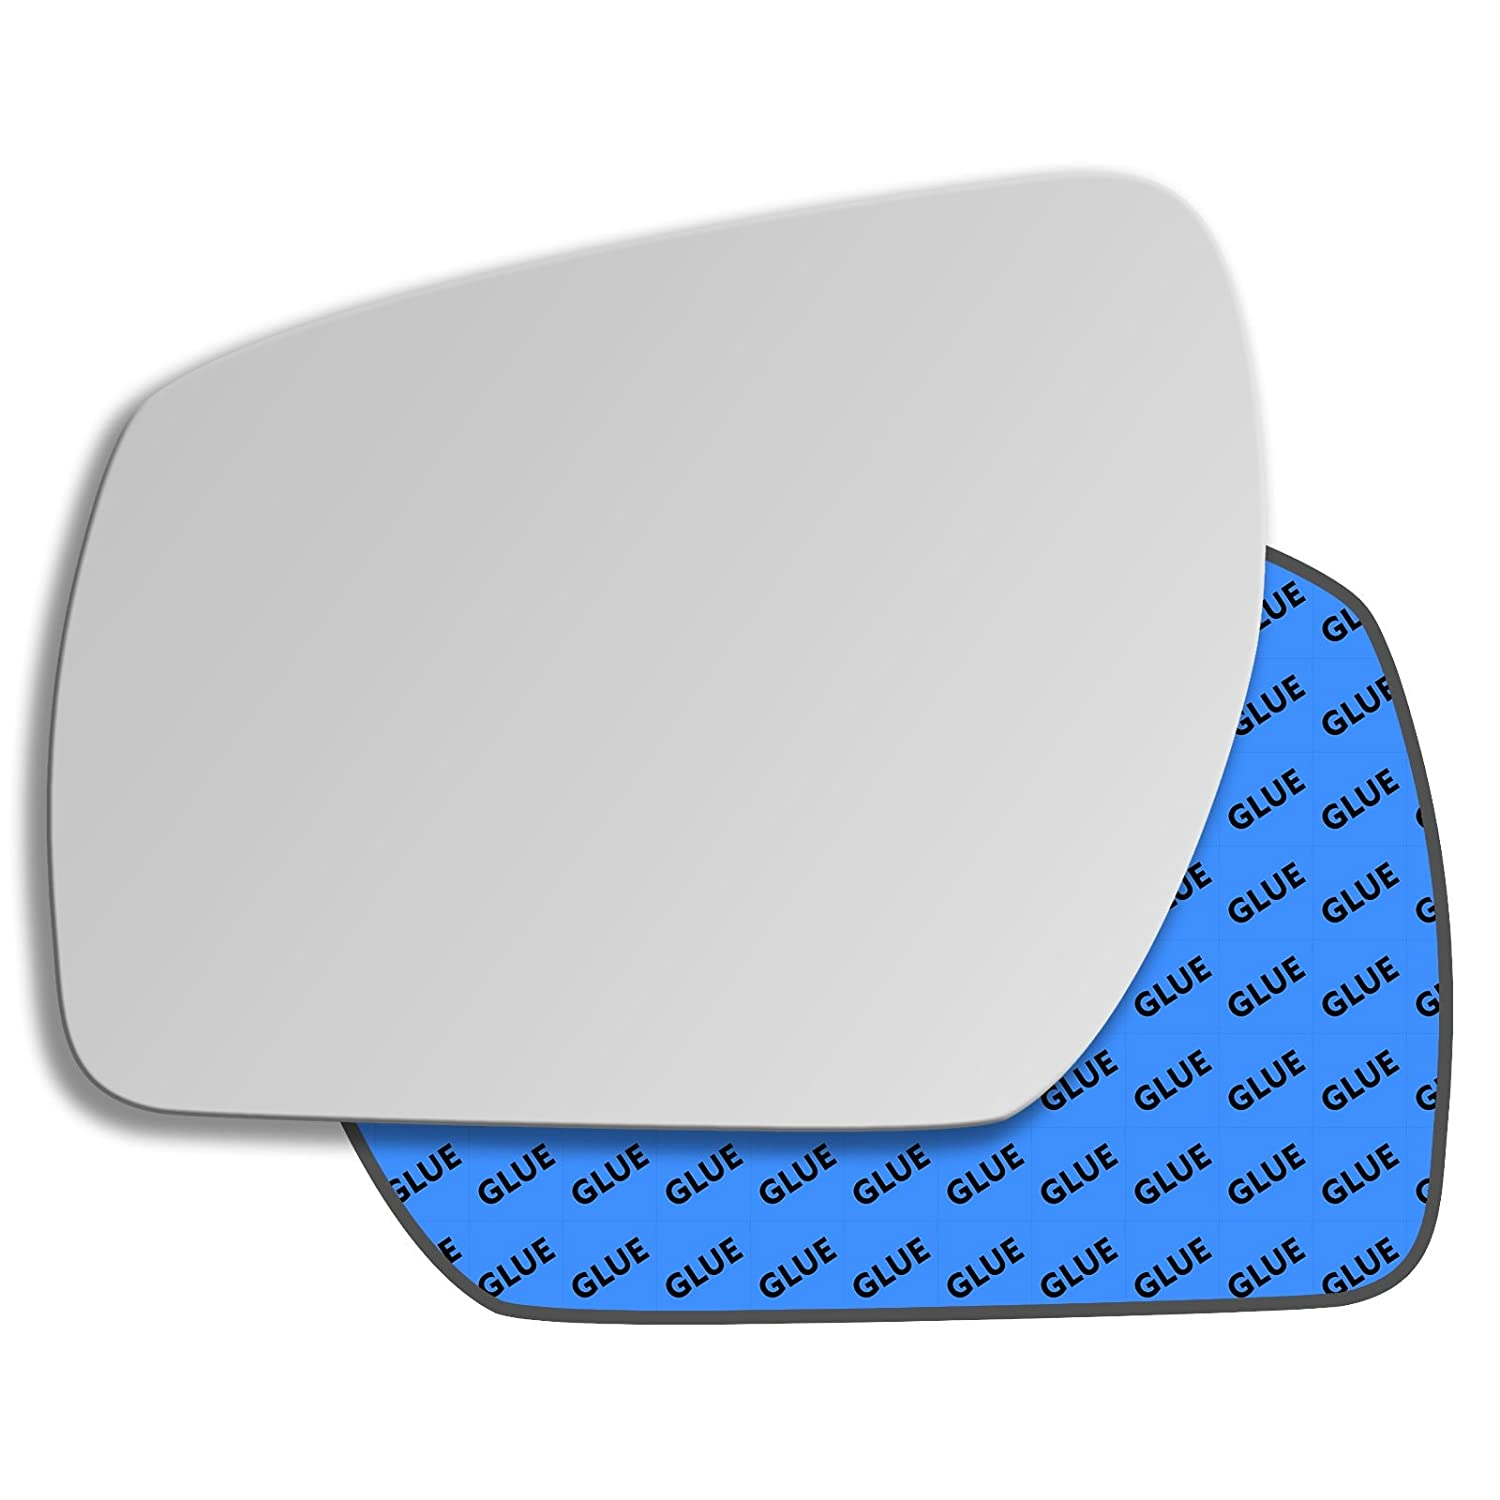 Clip On Driver right hand side Heated wing door Silver mirror glass with backing plate #C-SHY//R-OLCAE14